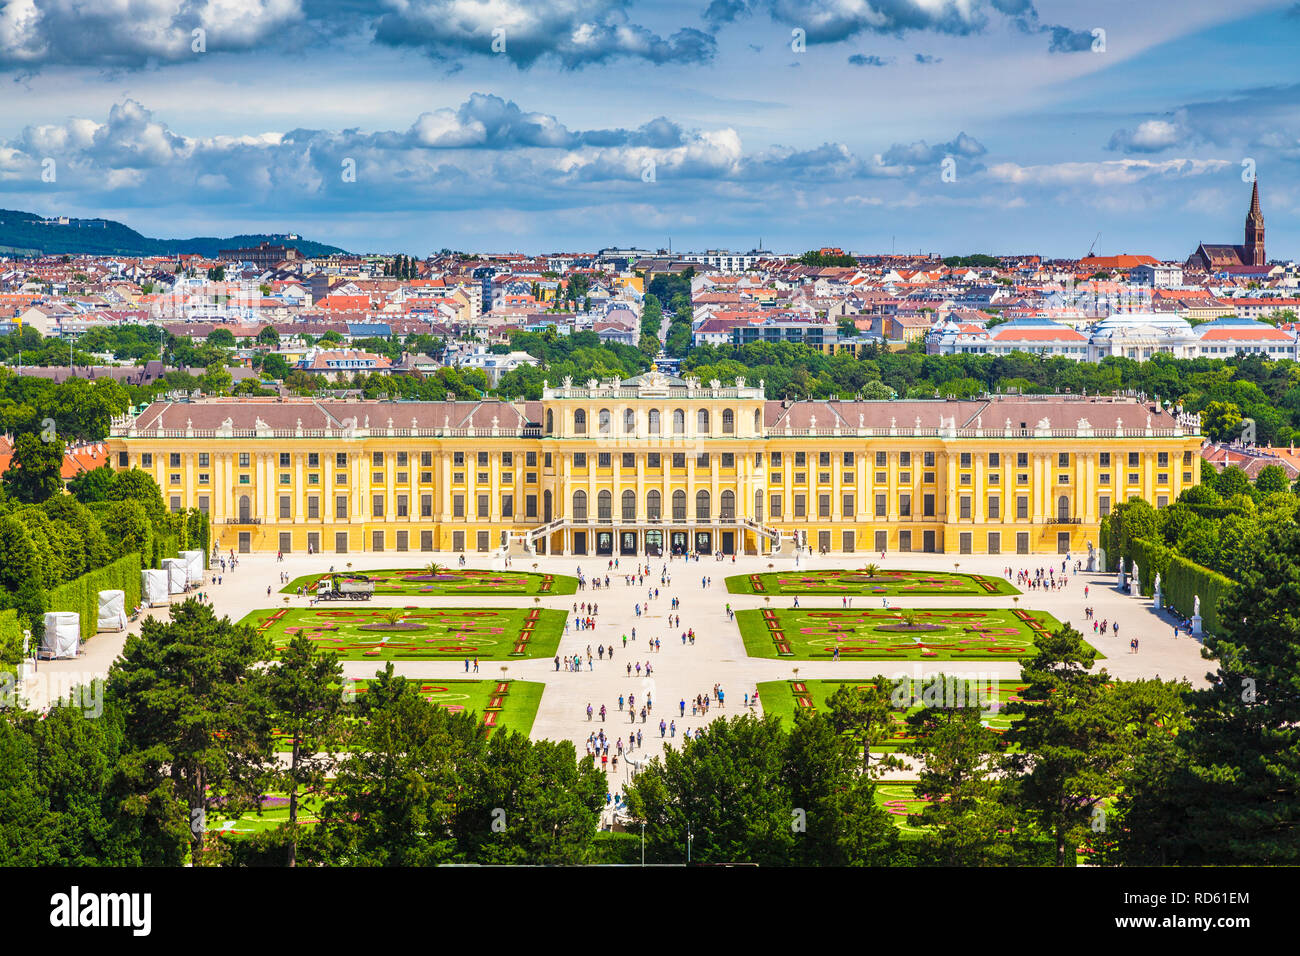 Classic view of famous Schonbrunn Palace with Great Parterre garden on a beautiful sunny day with blue sky and clouds in summer, Vienna, Austria - Stock Image